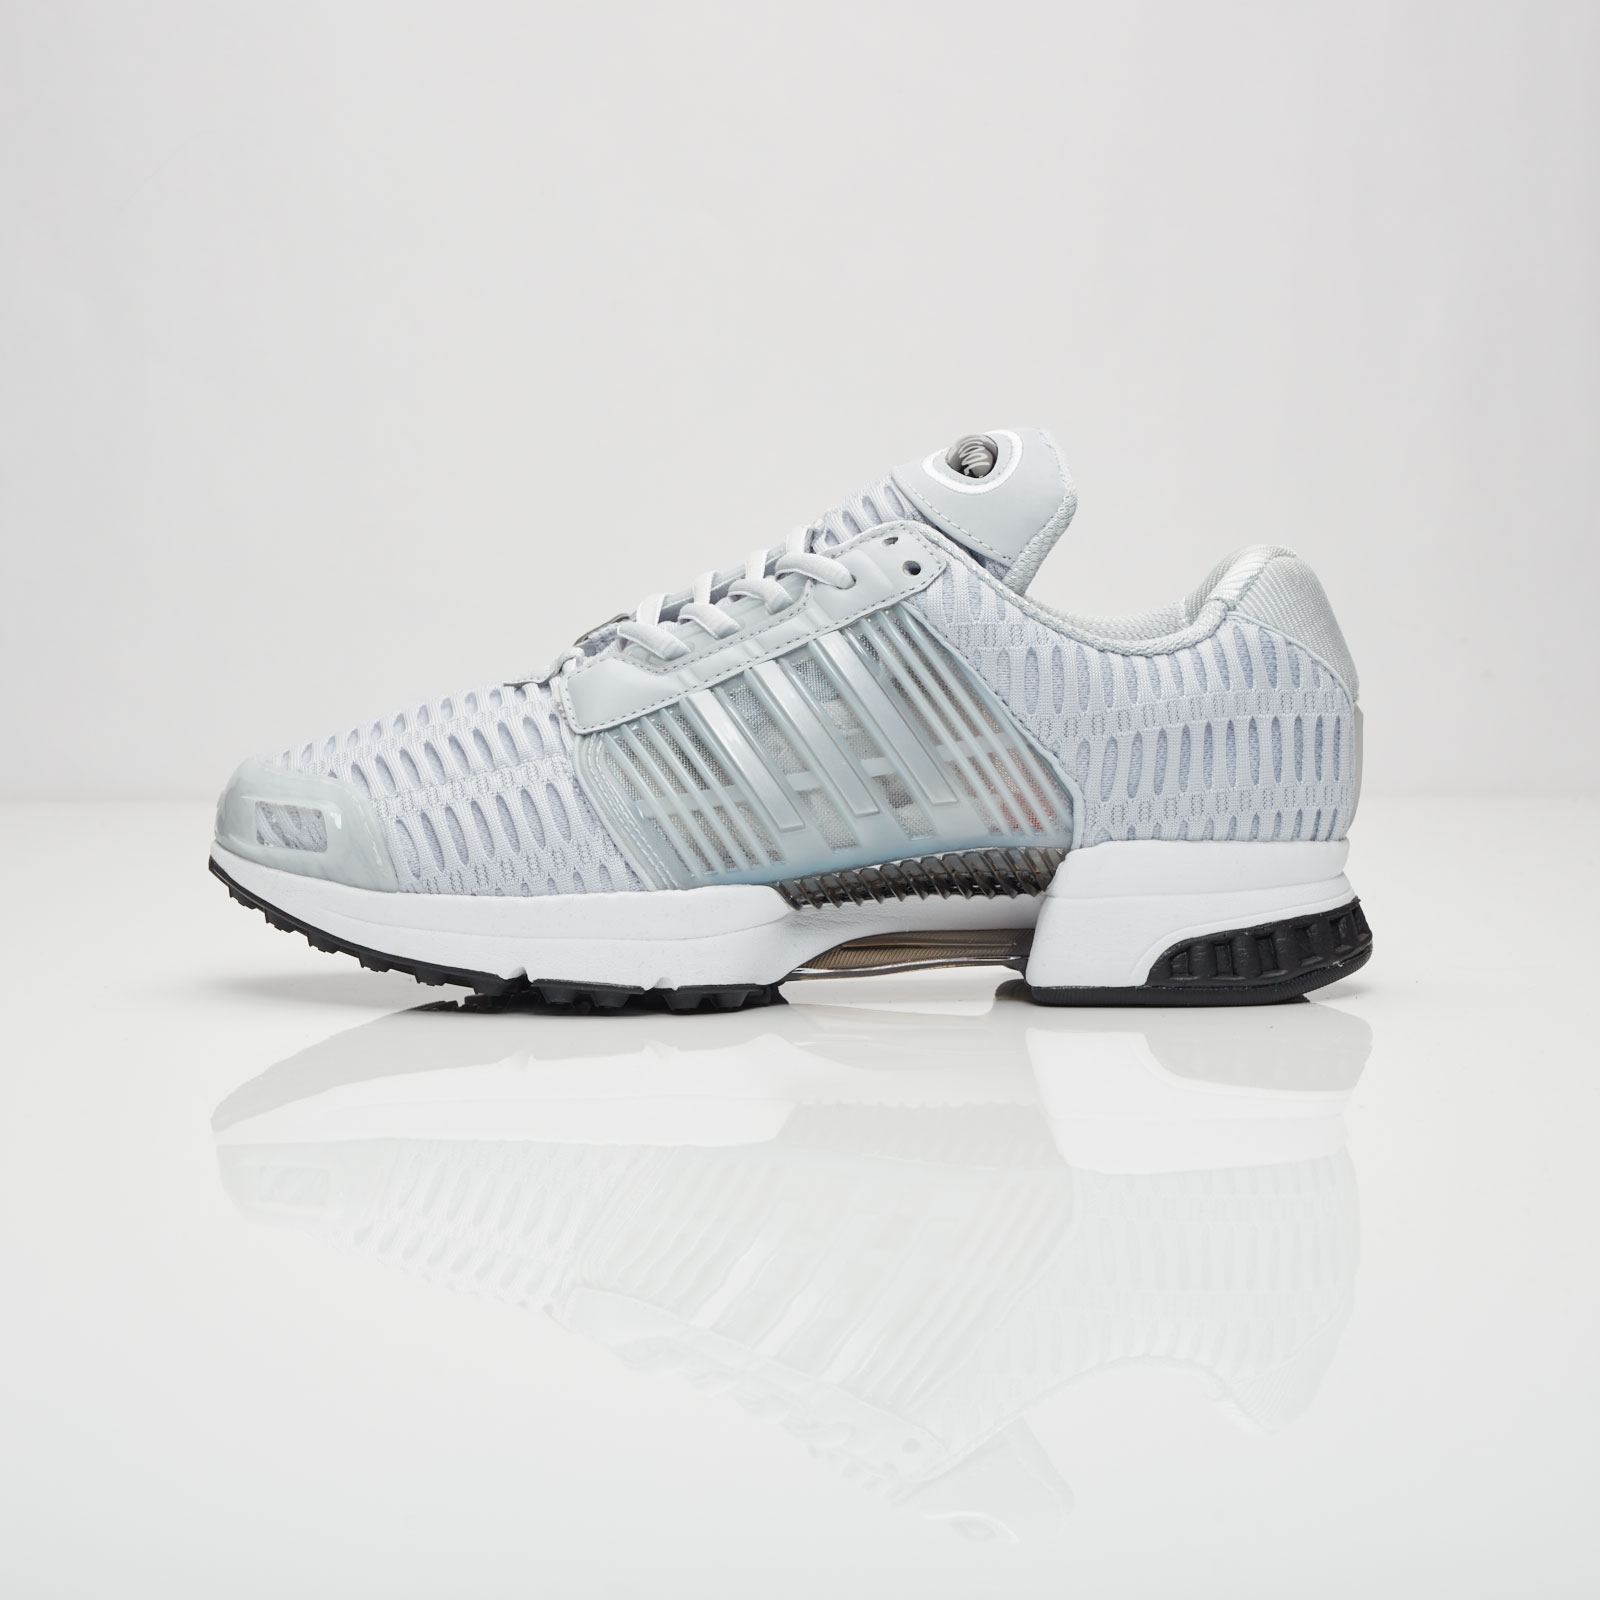 adidas Clima Cool 1 Ba7167 Sneakersnstuff   sneakers